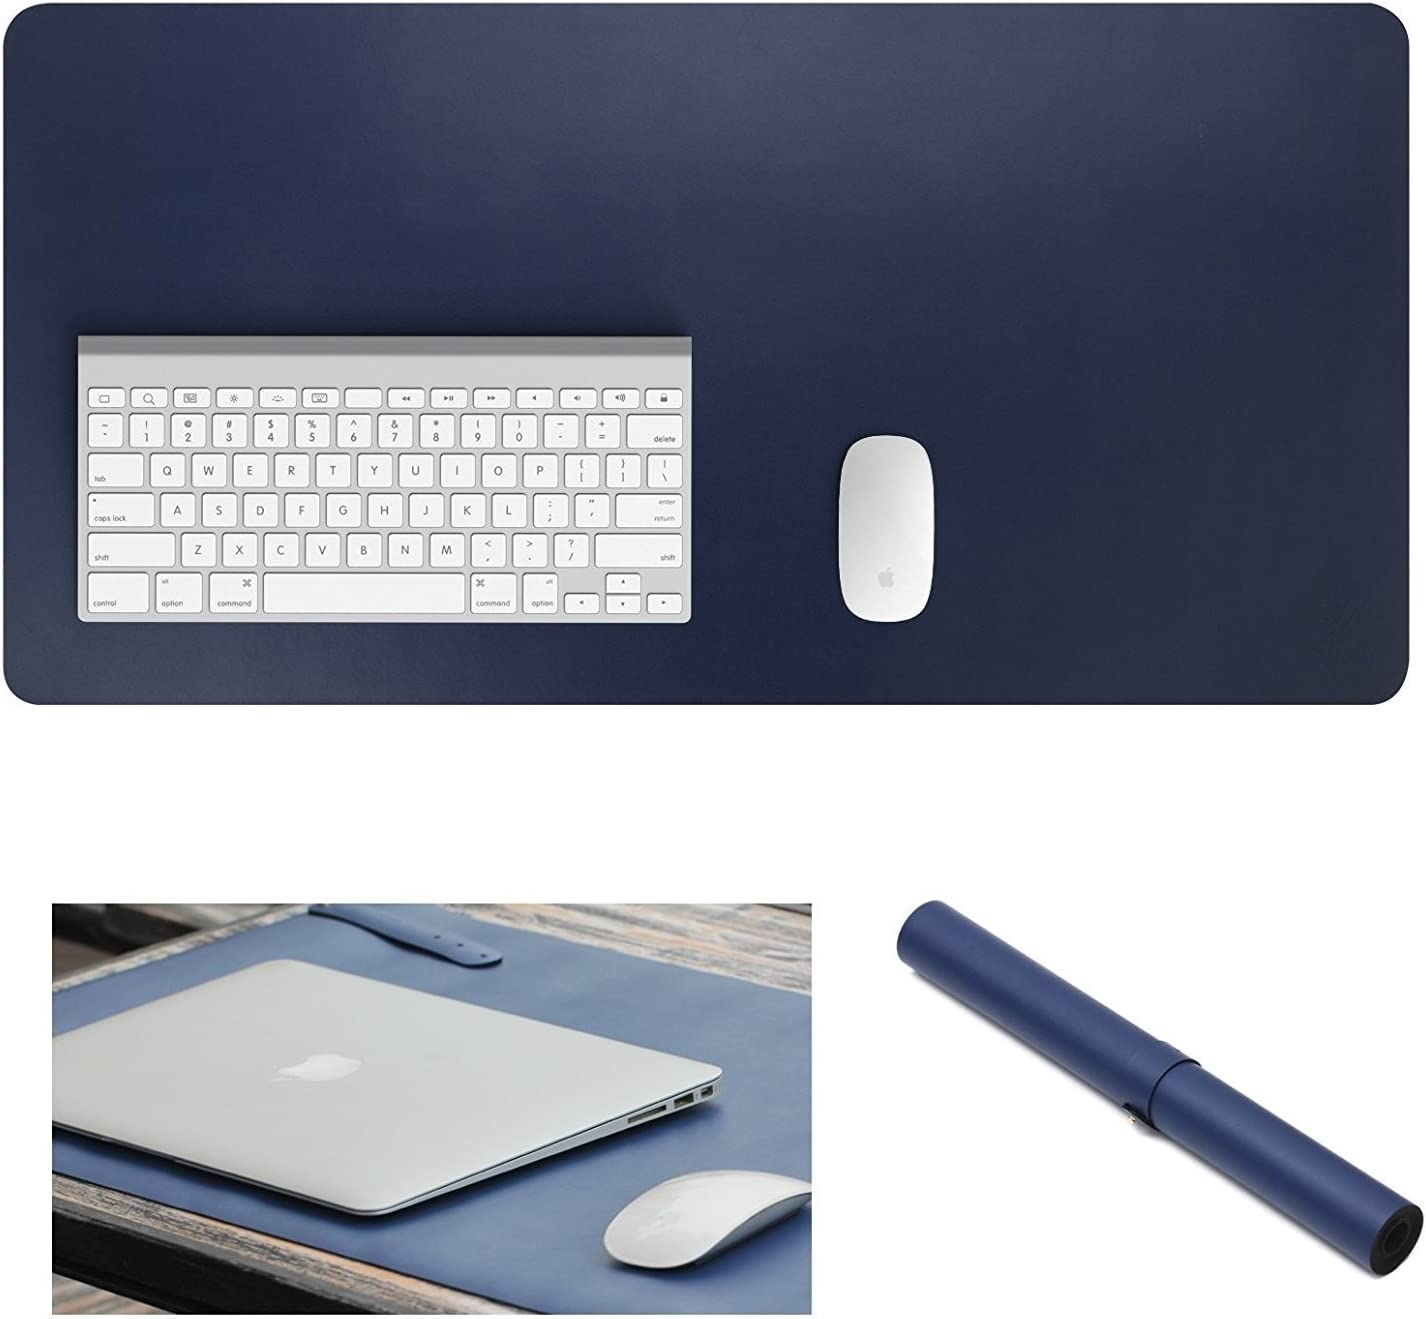 """Yikda Extended Leather Mouse Pad/Mat, Large Office Writing Gaming Desk Computer Leather Mat Mousepad,Waterproof,Ultra Thin 1.2mm - 31""""x15.5"""" (Blue)"""